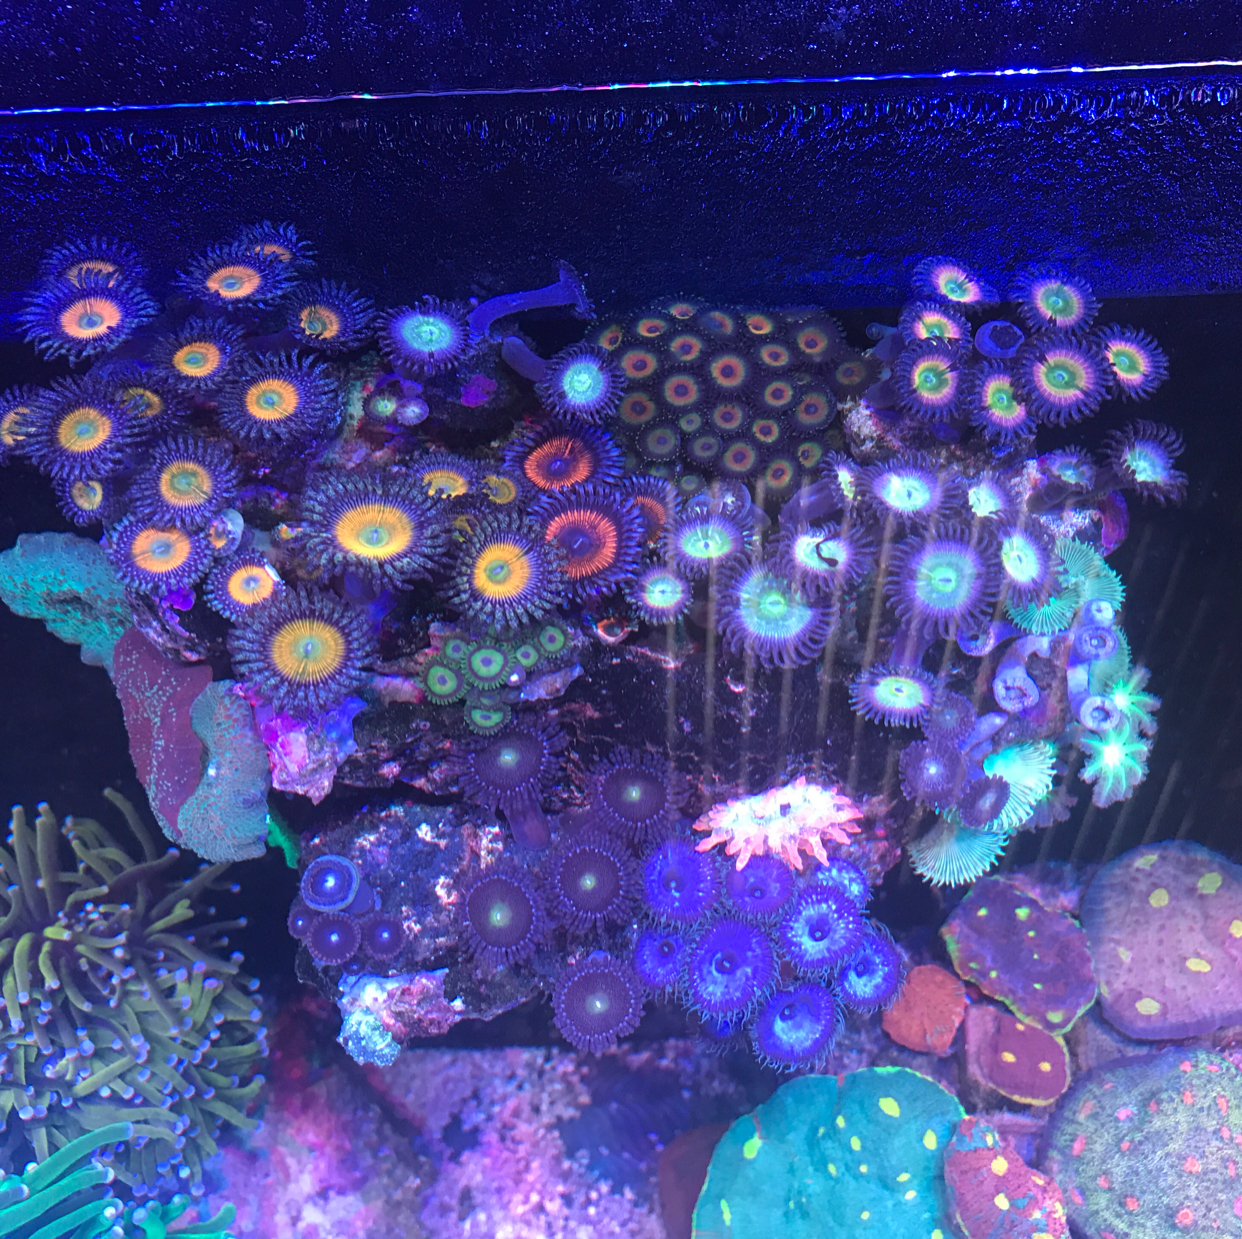 My Aquarium on Aug 12, 2017